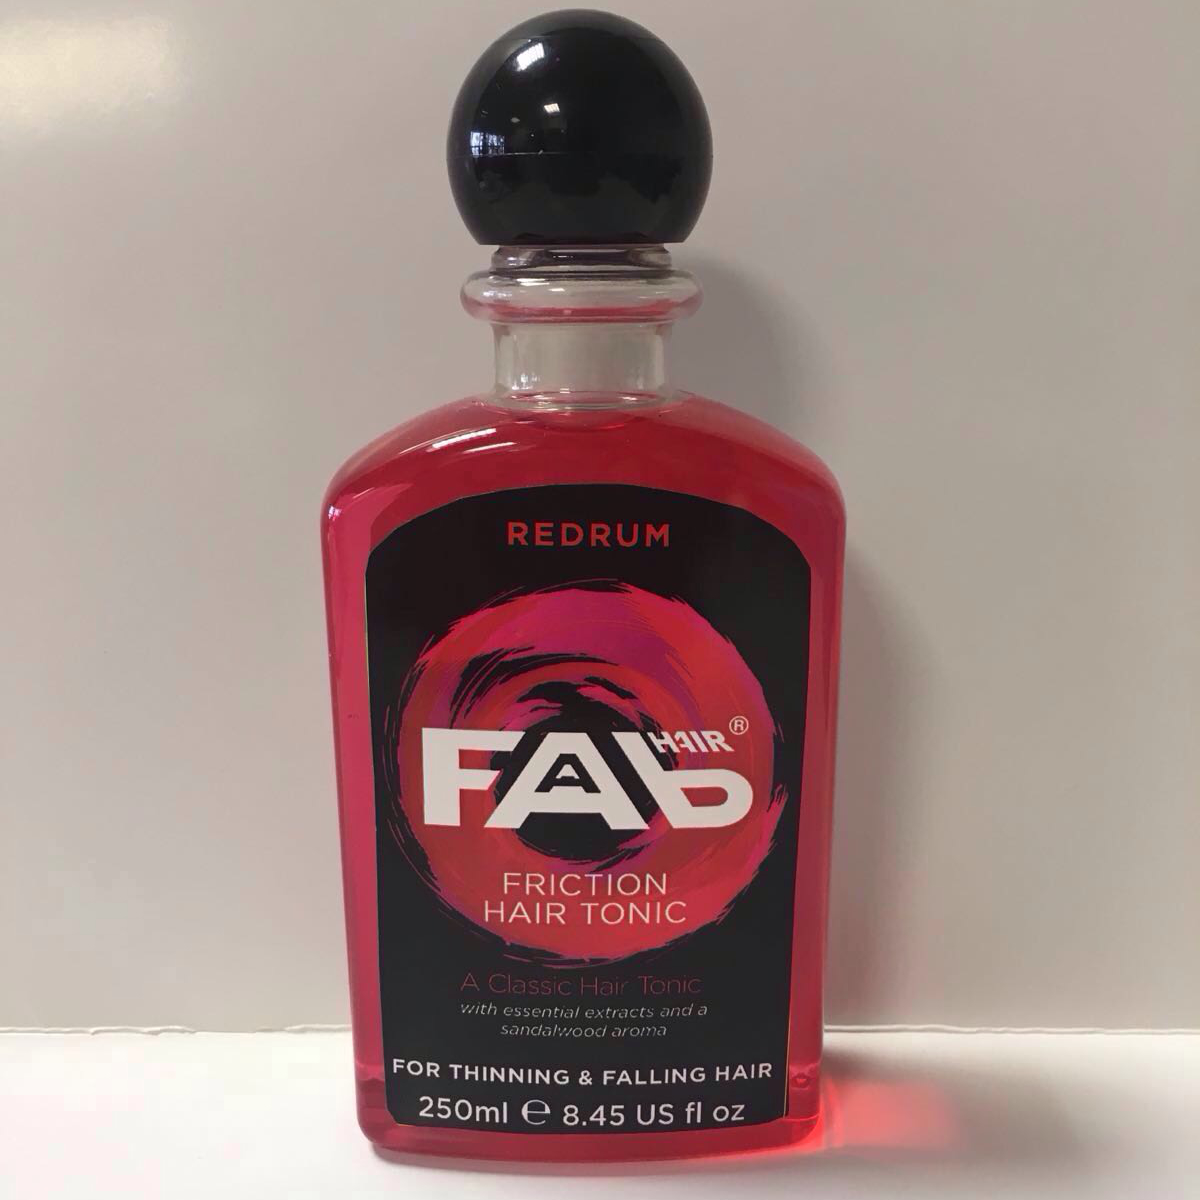 redrum FAB hair friction tonic